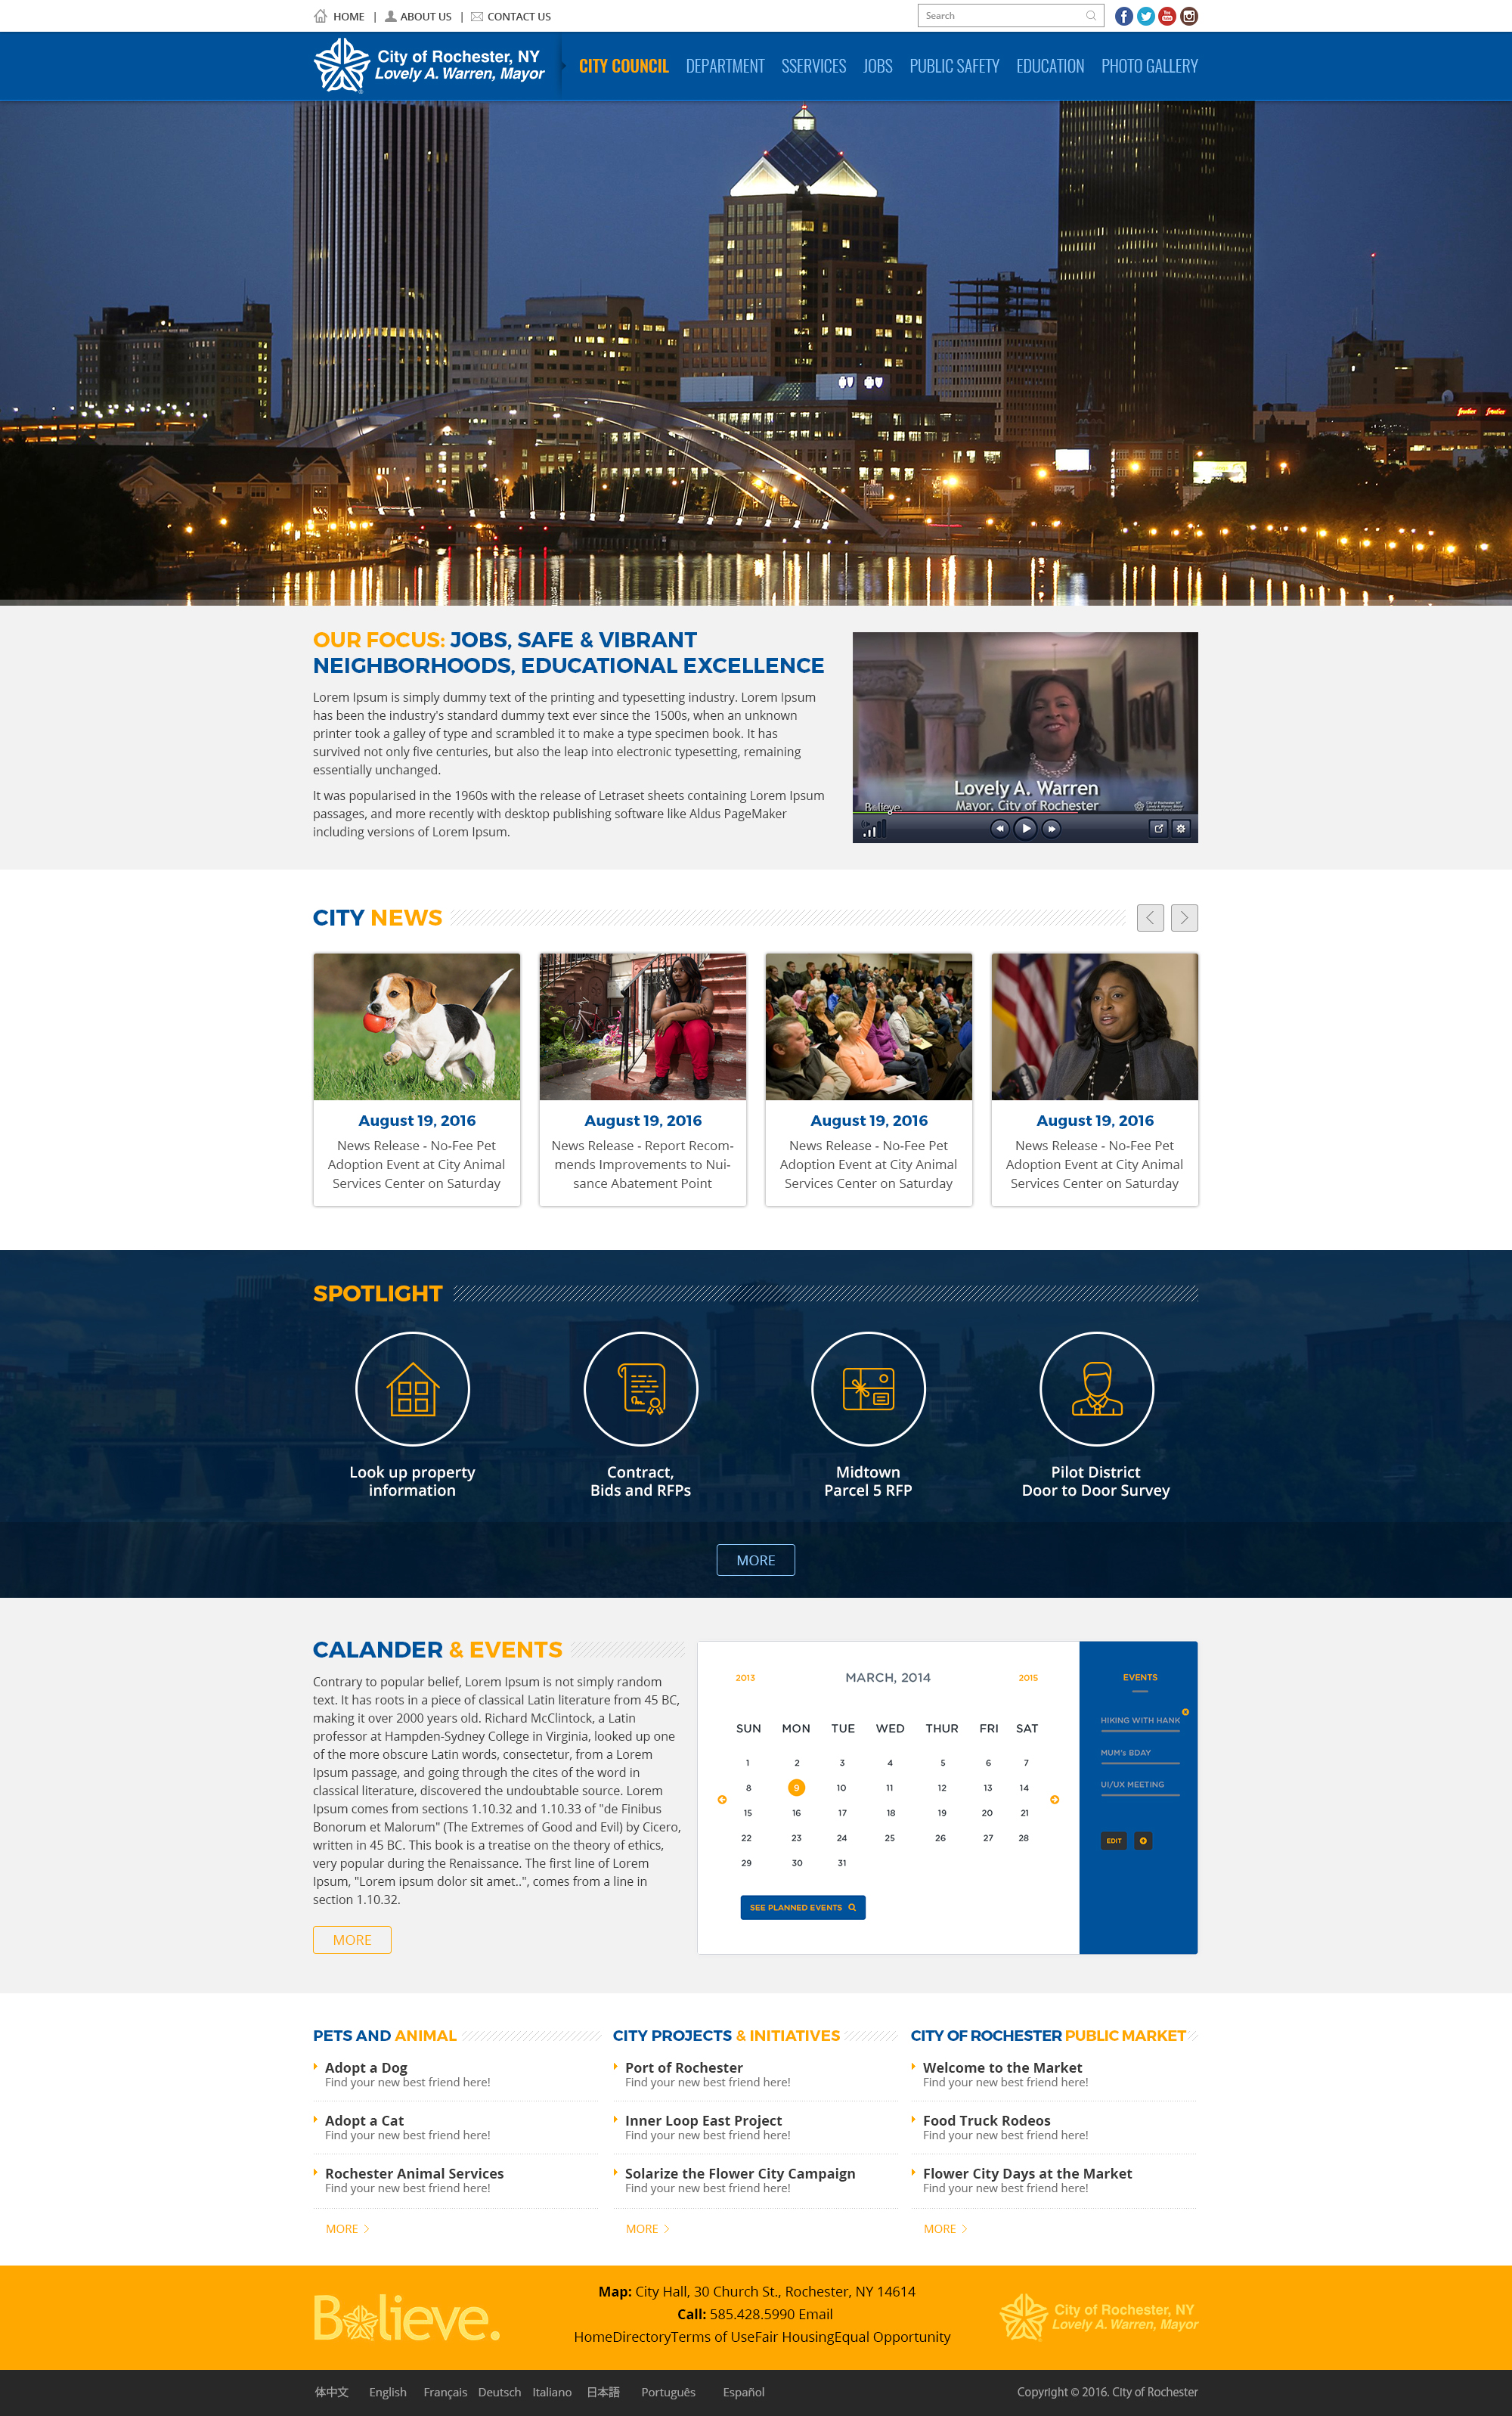 City of Rochester Website Mockup